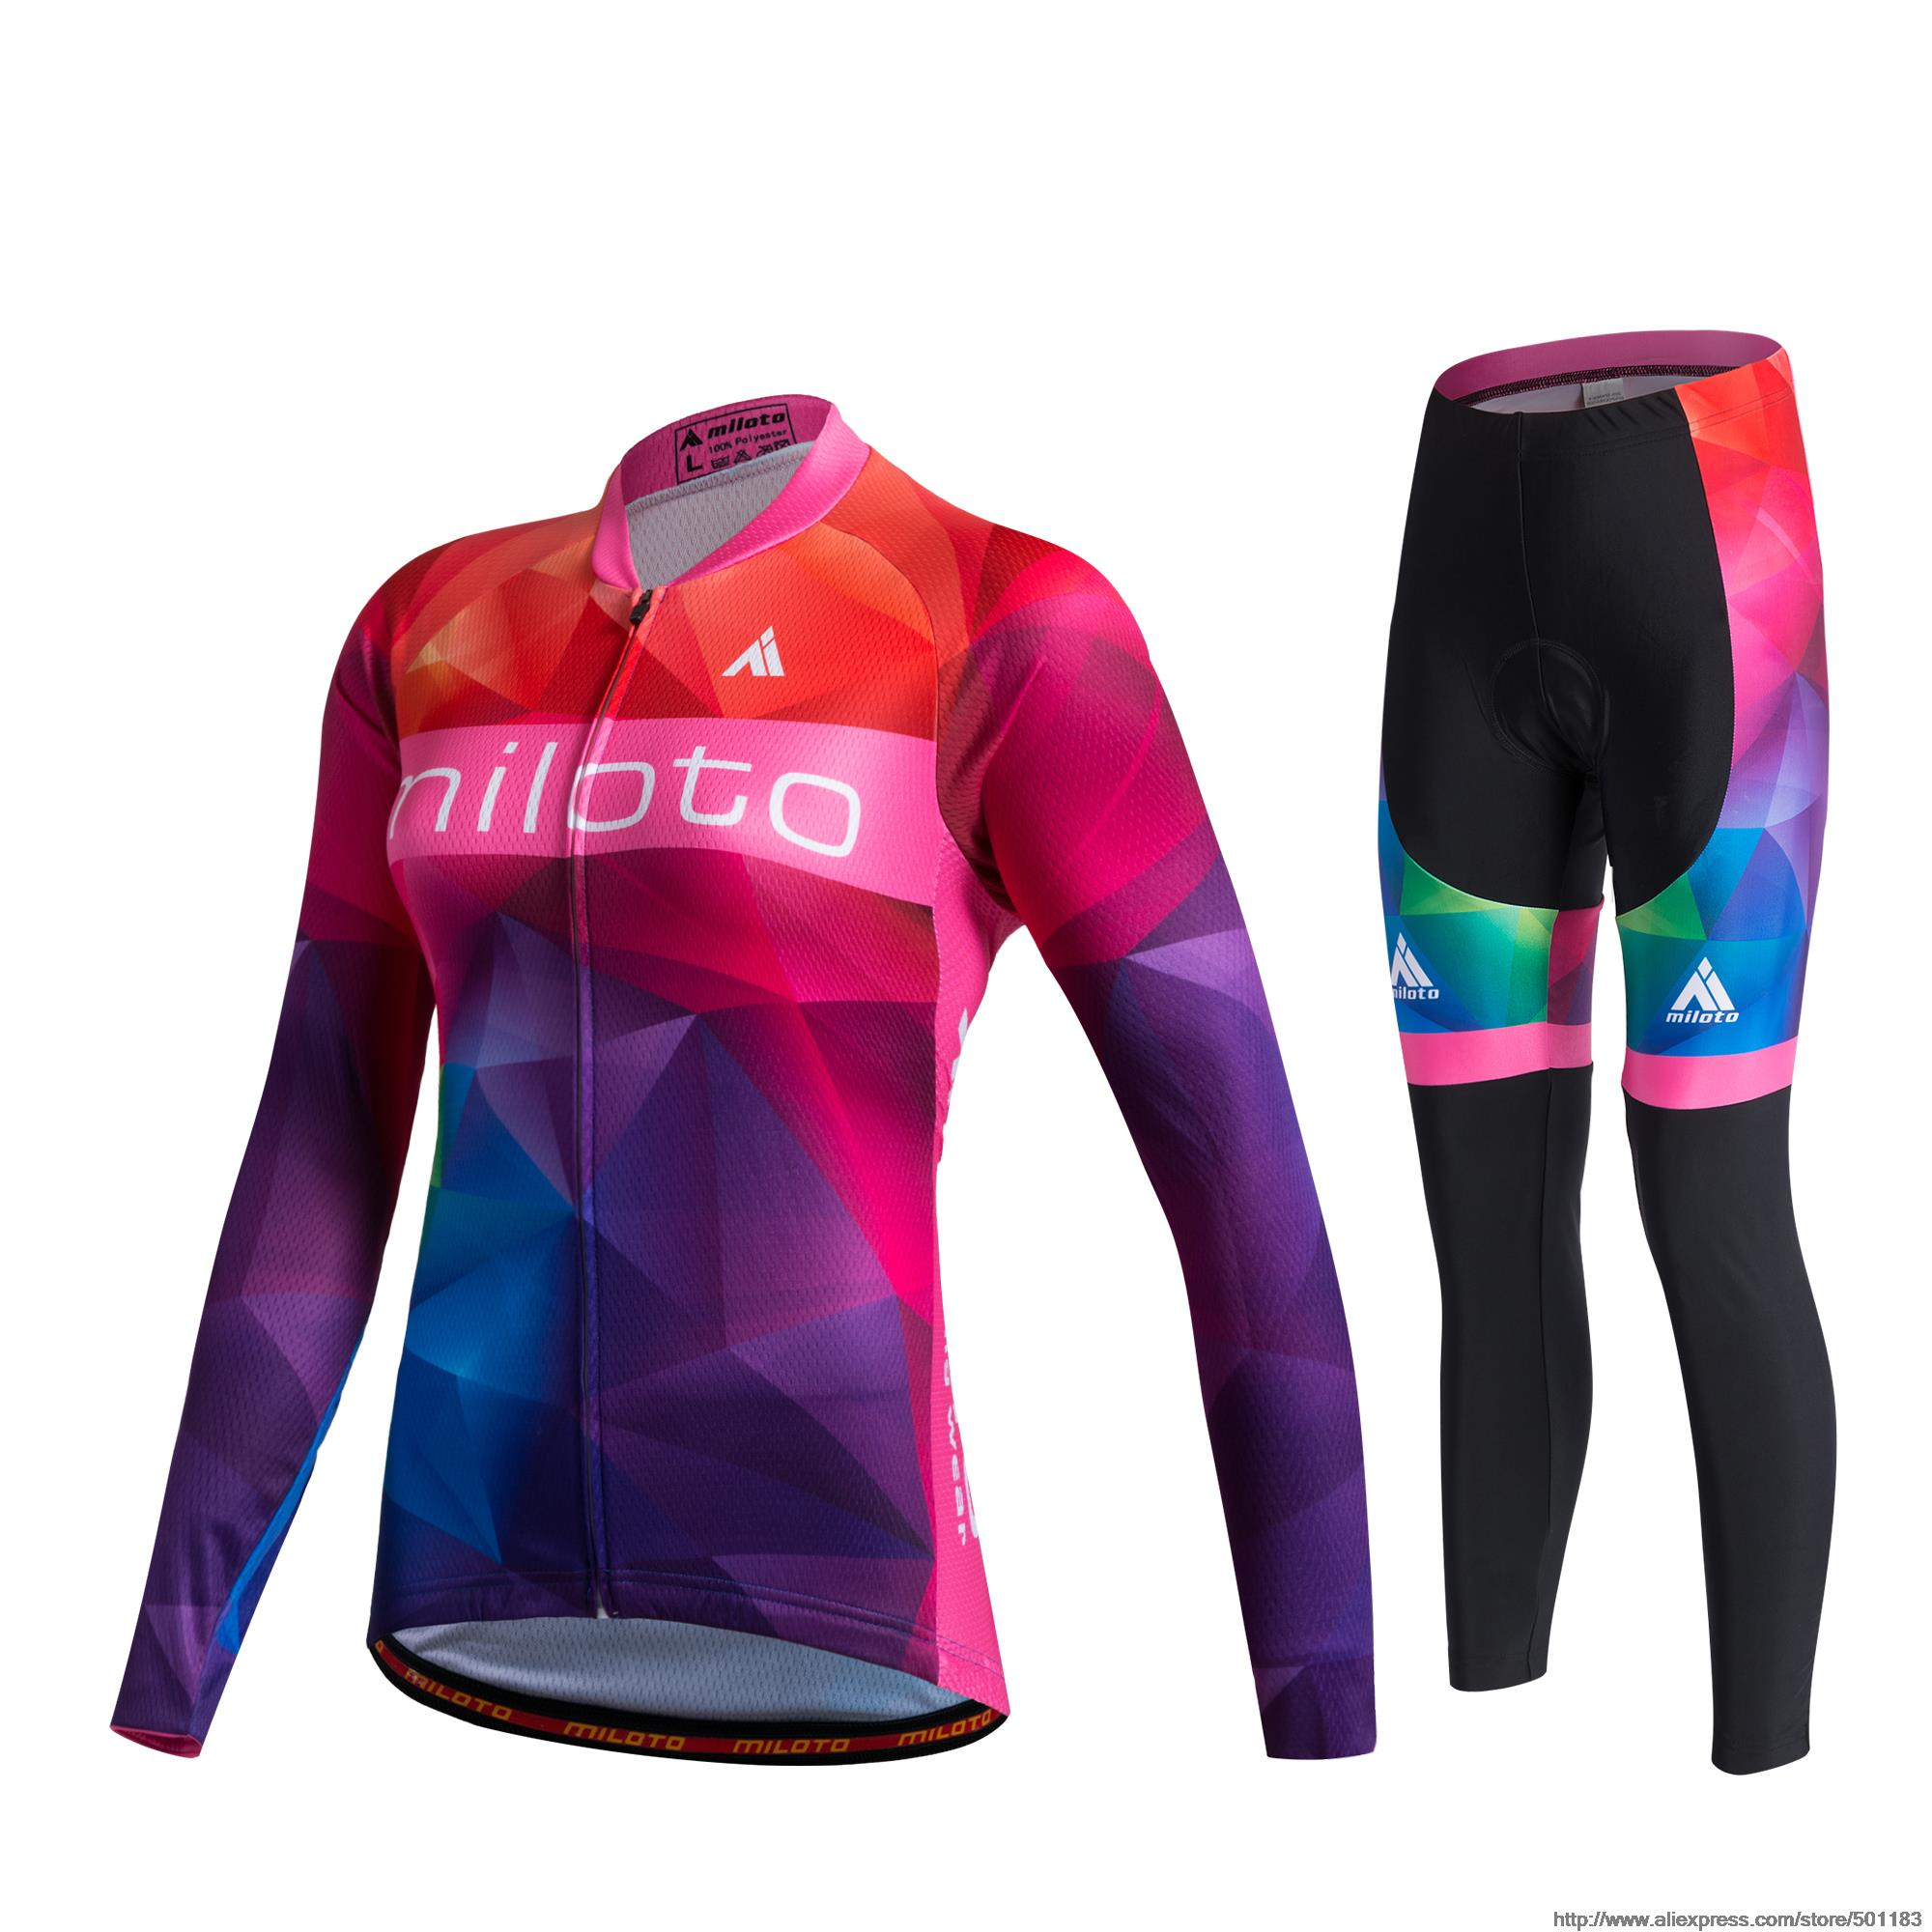 FASTCUTE Cycling Jersey Multicolor Bicycle Bike Short Sleeve Sportswear Cycling  Clothing maillot Cycling Jerseys set ac76c57f3